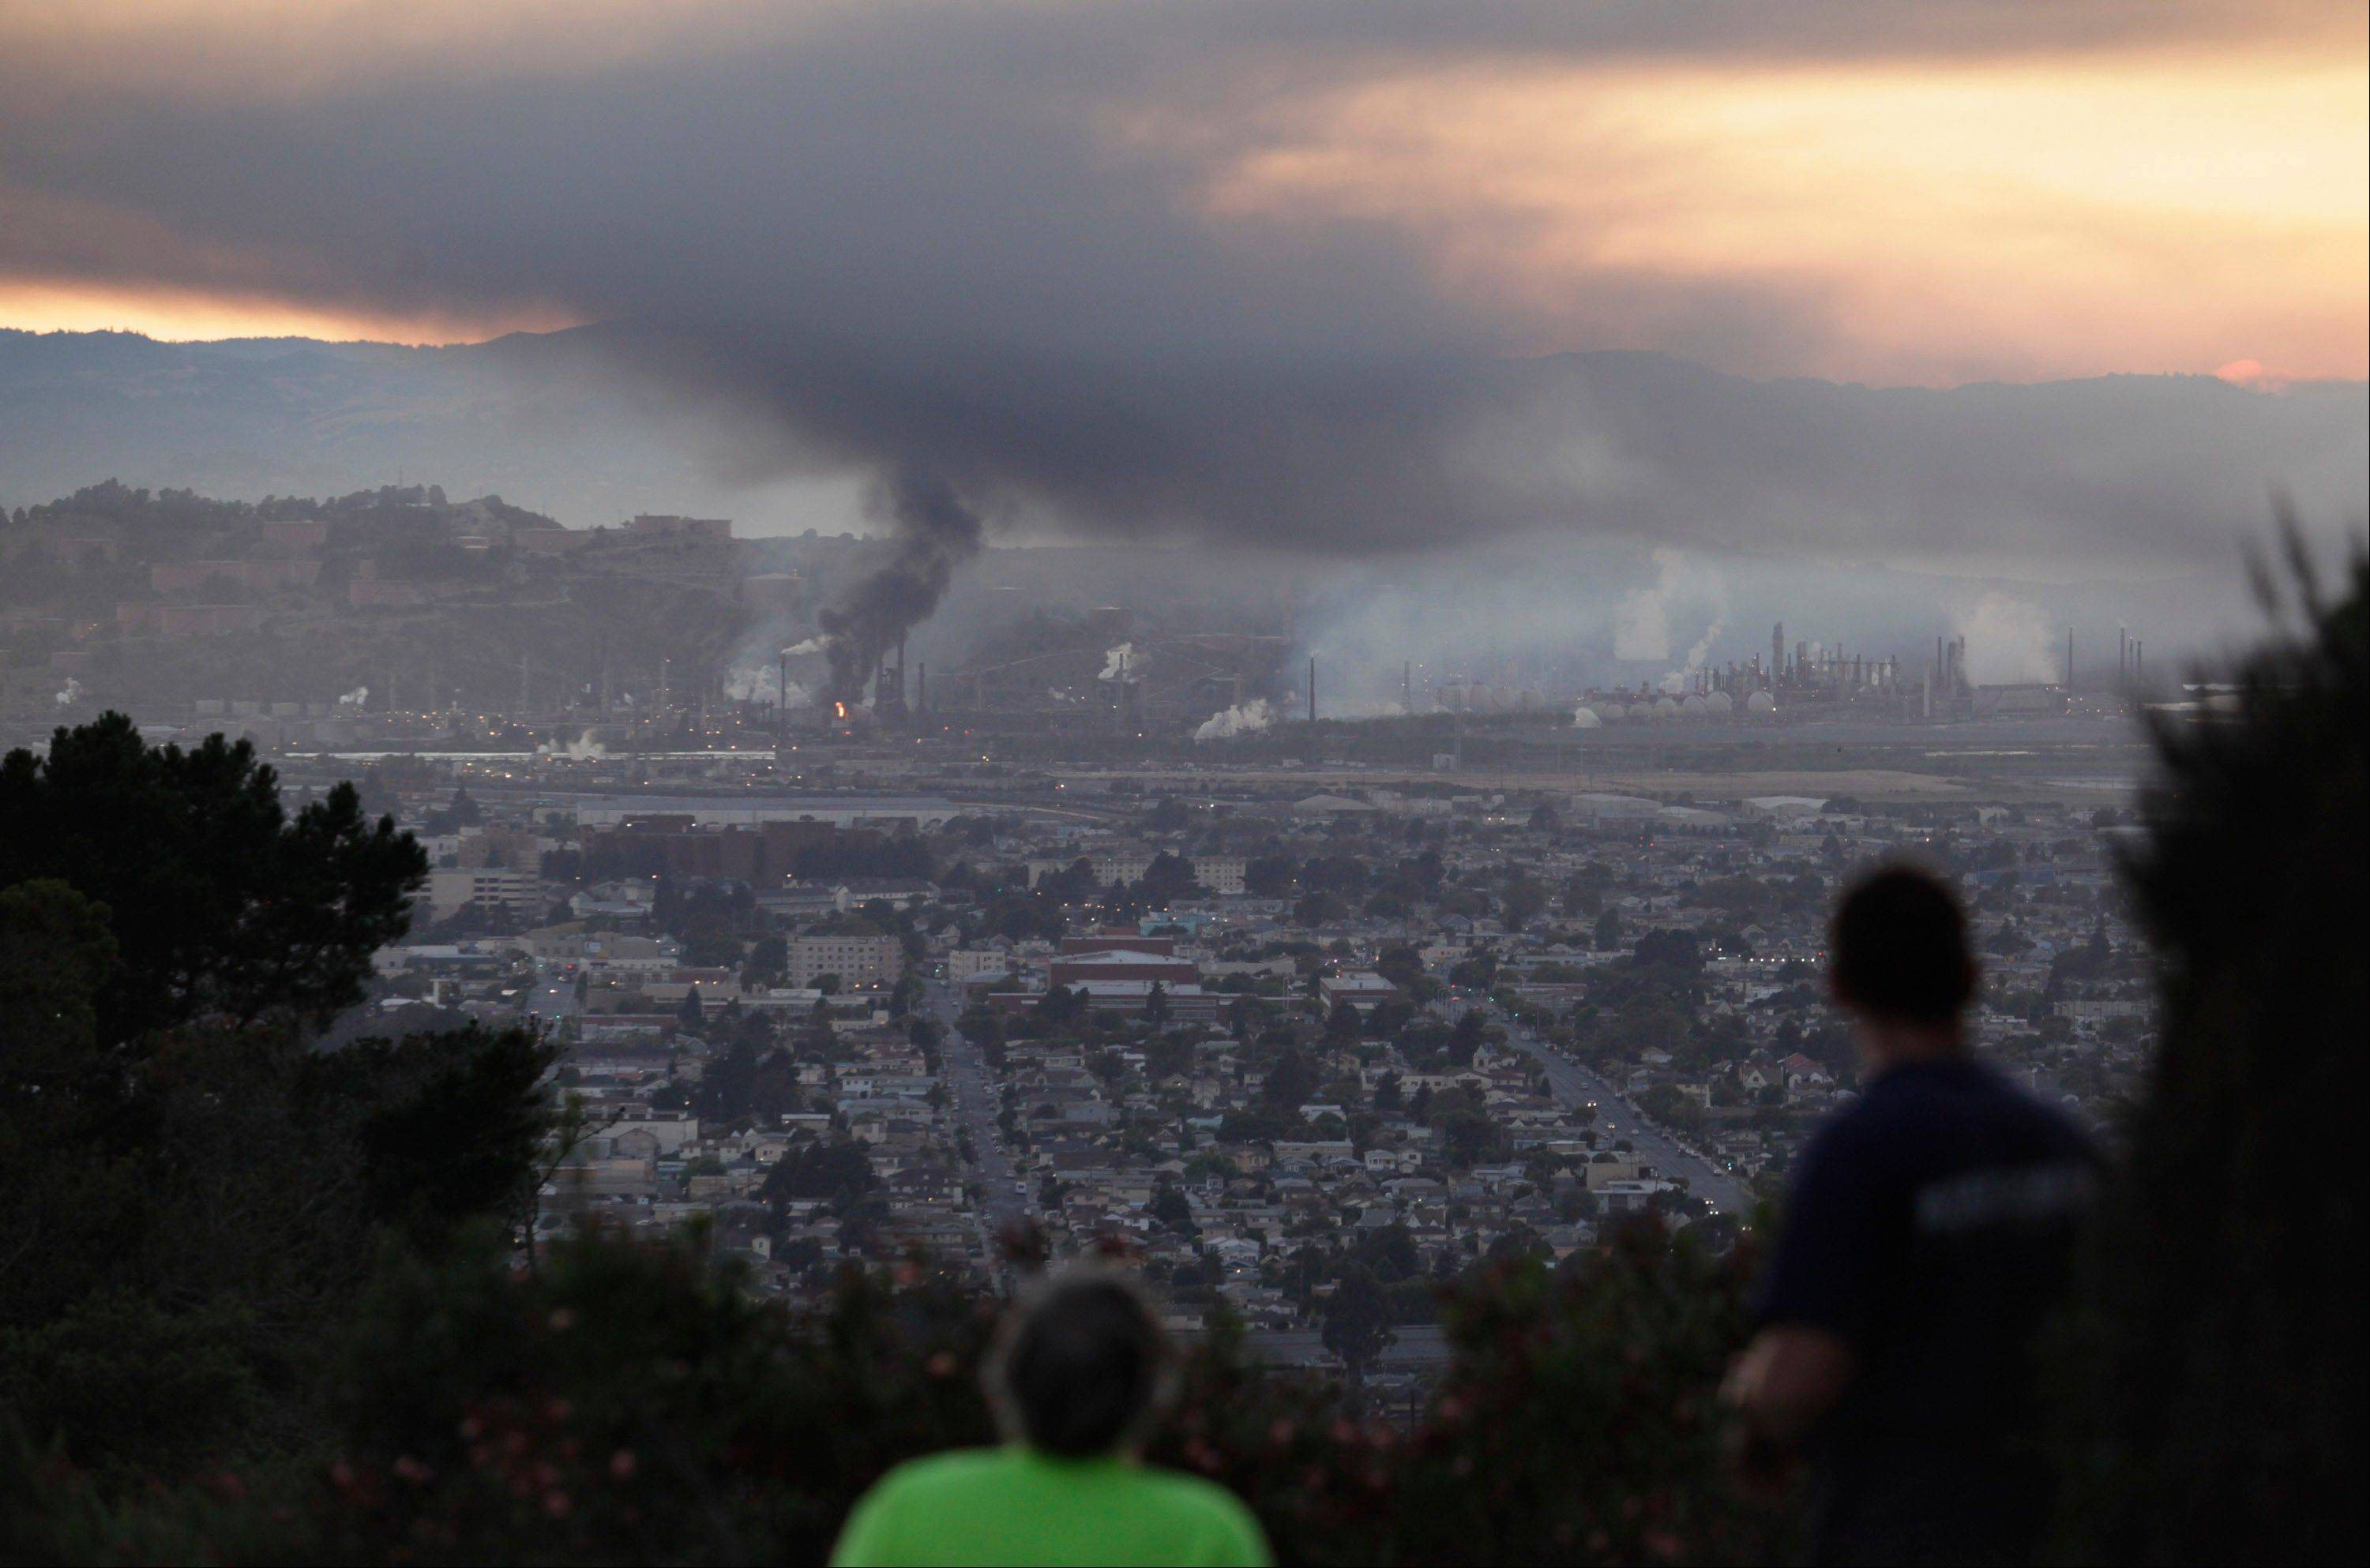 People watch smoke rise from the Chevron refinery in Richmond, Calif., from a vantage point in the El Cerrito hills Monday. Officials told residents of two Northern California cities to shelter-in-place as a fire at a Chevron refinery in Richmond releases plumes of black smoke.